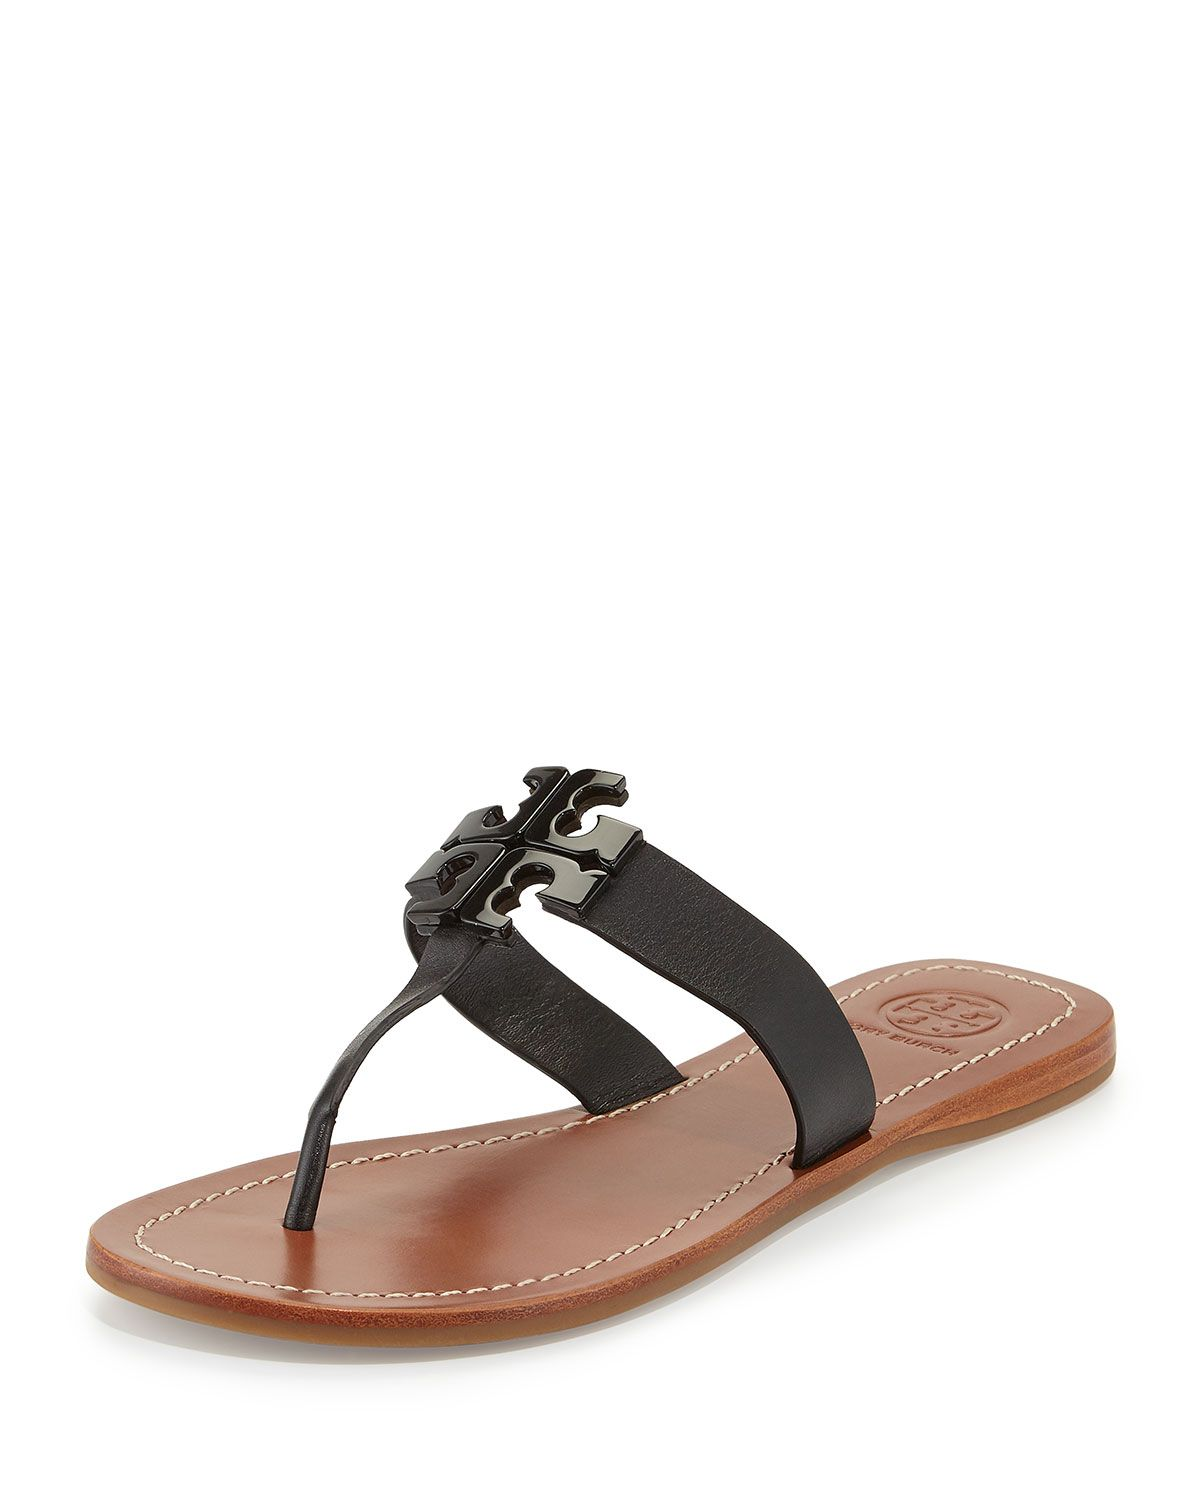 11a34f8c6 Tory Burch Moore 2 Leather Thong Sandal